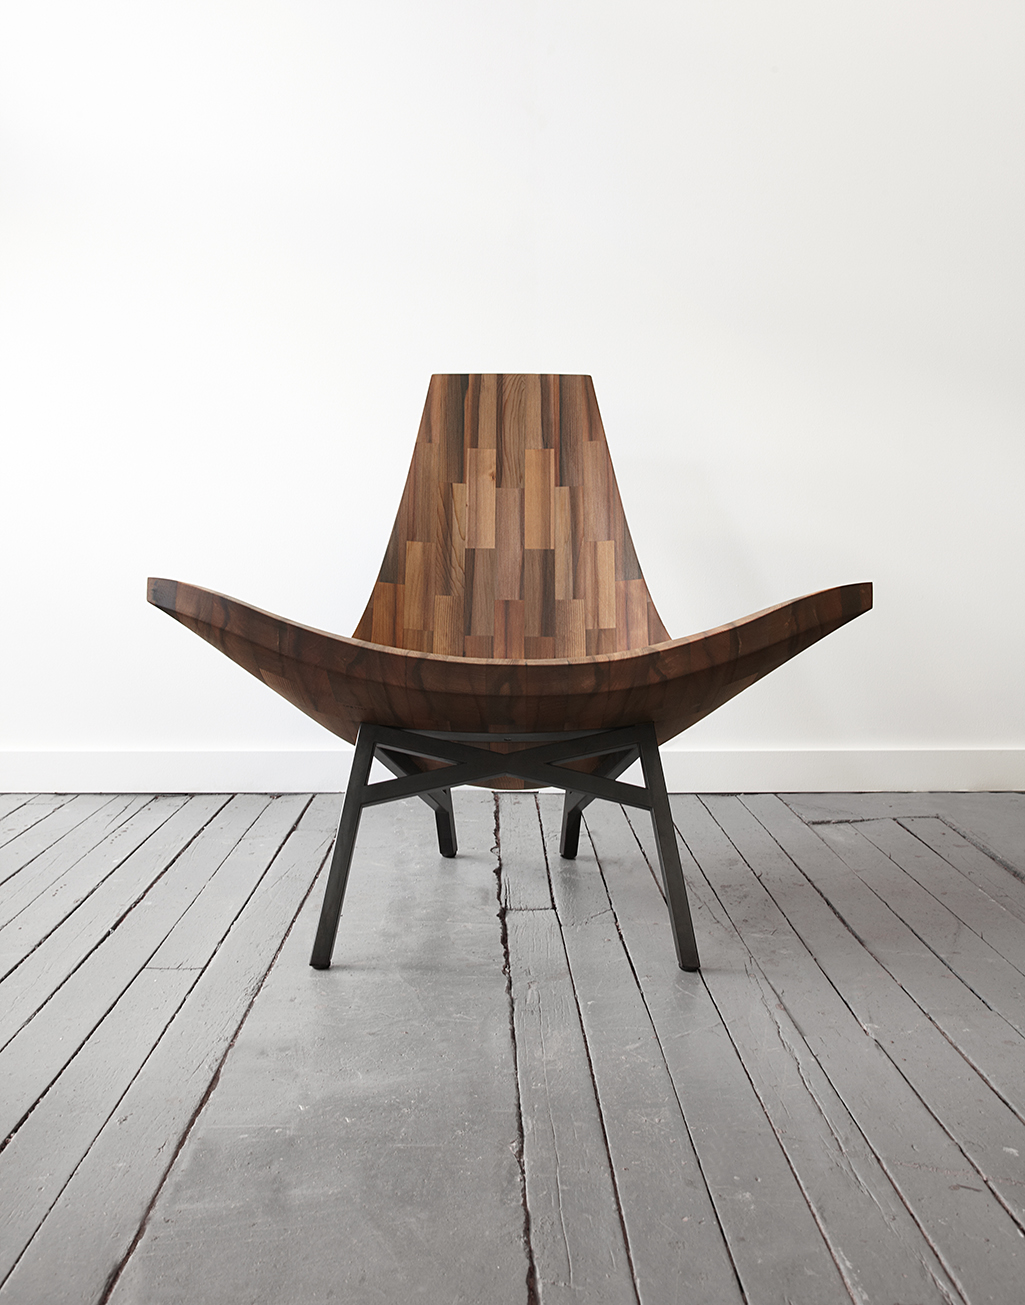 Water Tower Chair : lounge chair made from reclaimed timbers of a New York City Water Tower